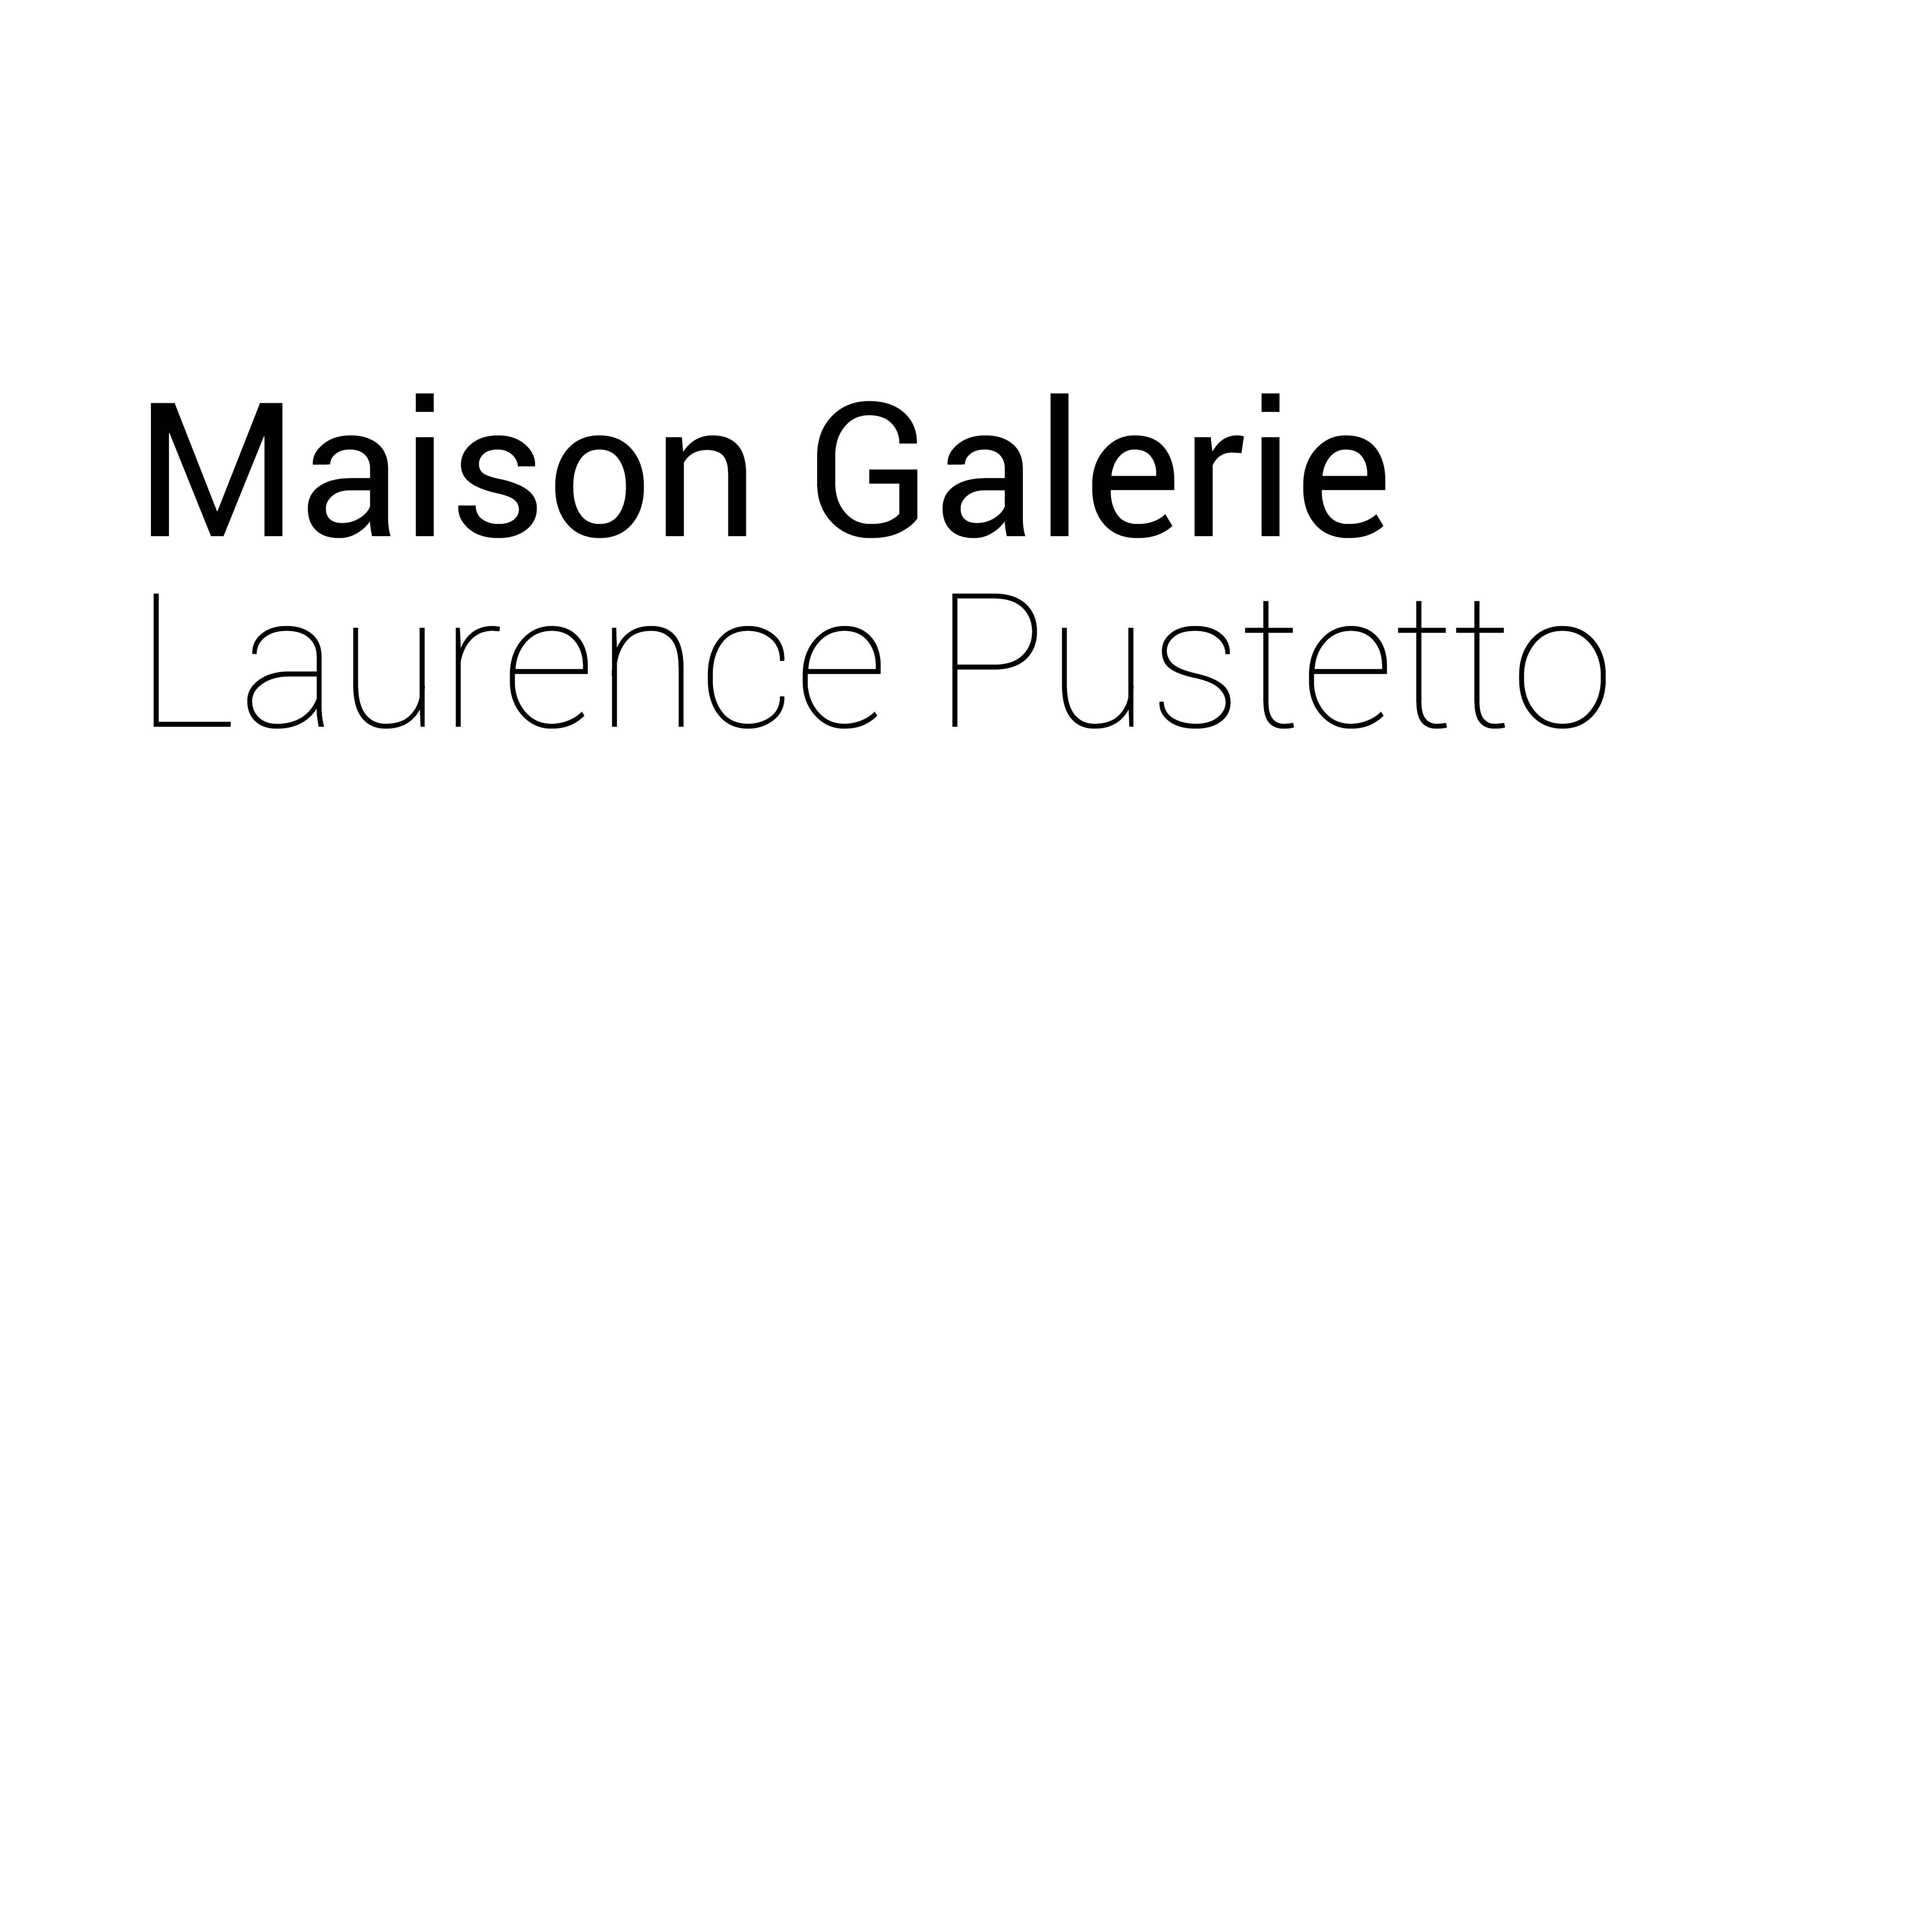 Maison Galerie Laurence Pustetto